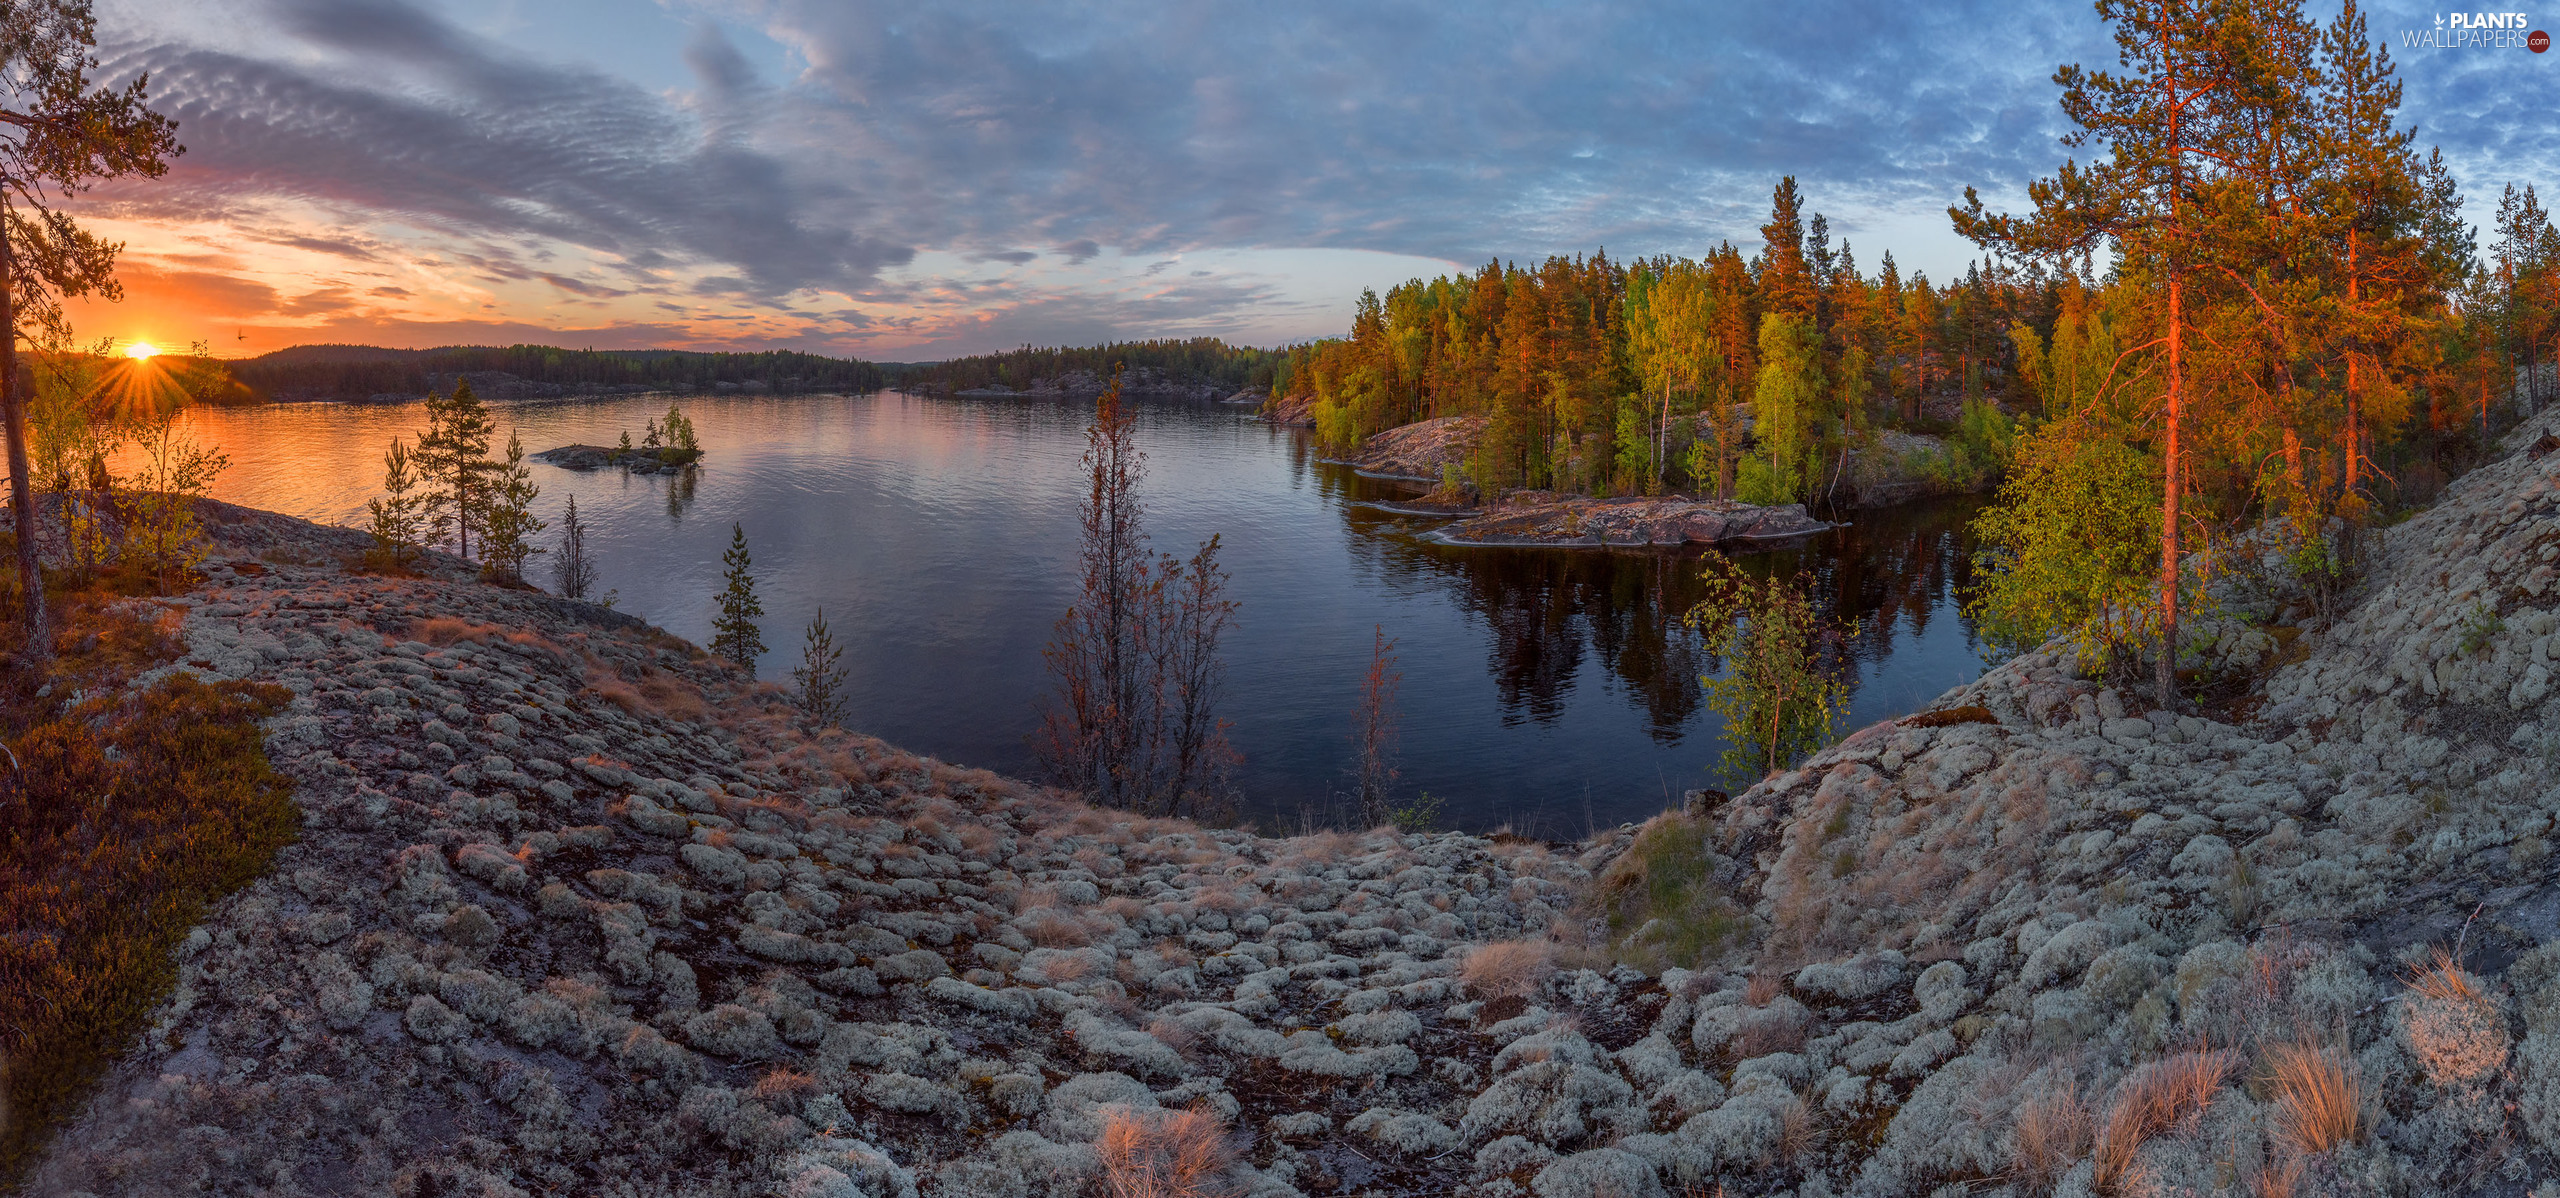 viewes, forest, Russia, Great Sunsets, Karelia, trees, Lake Ladoga, clouds